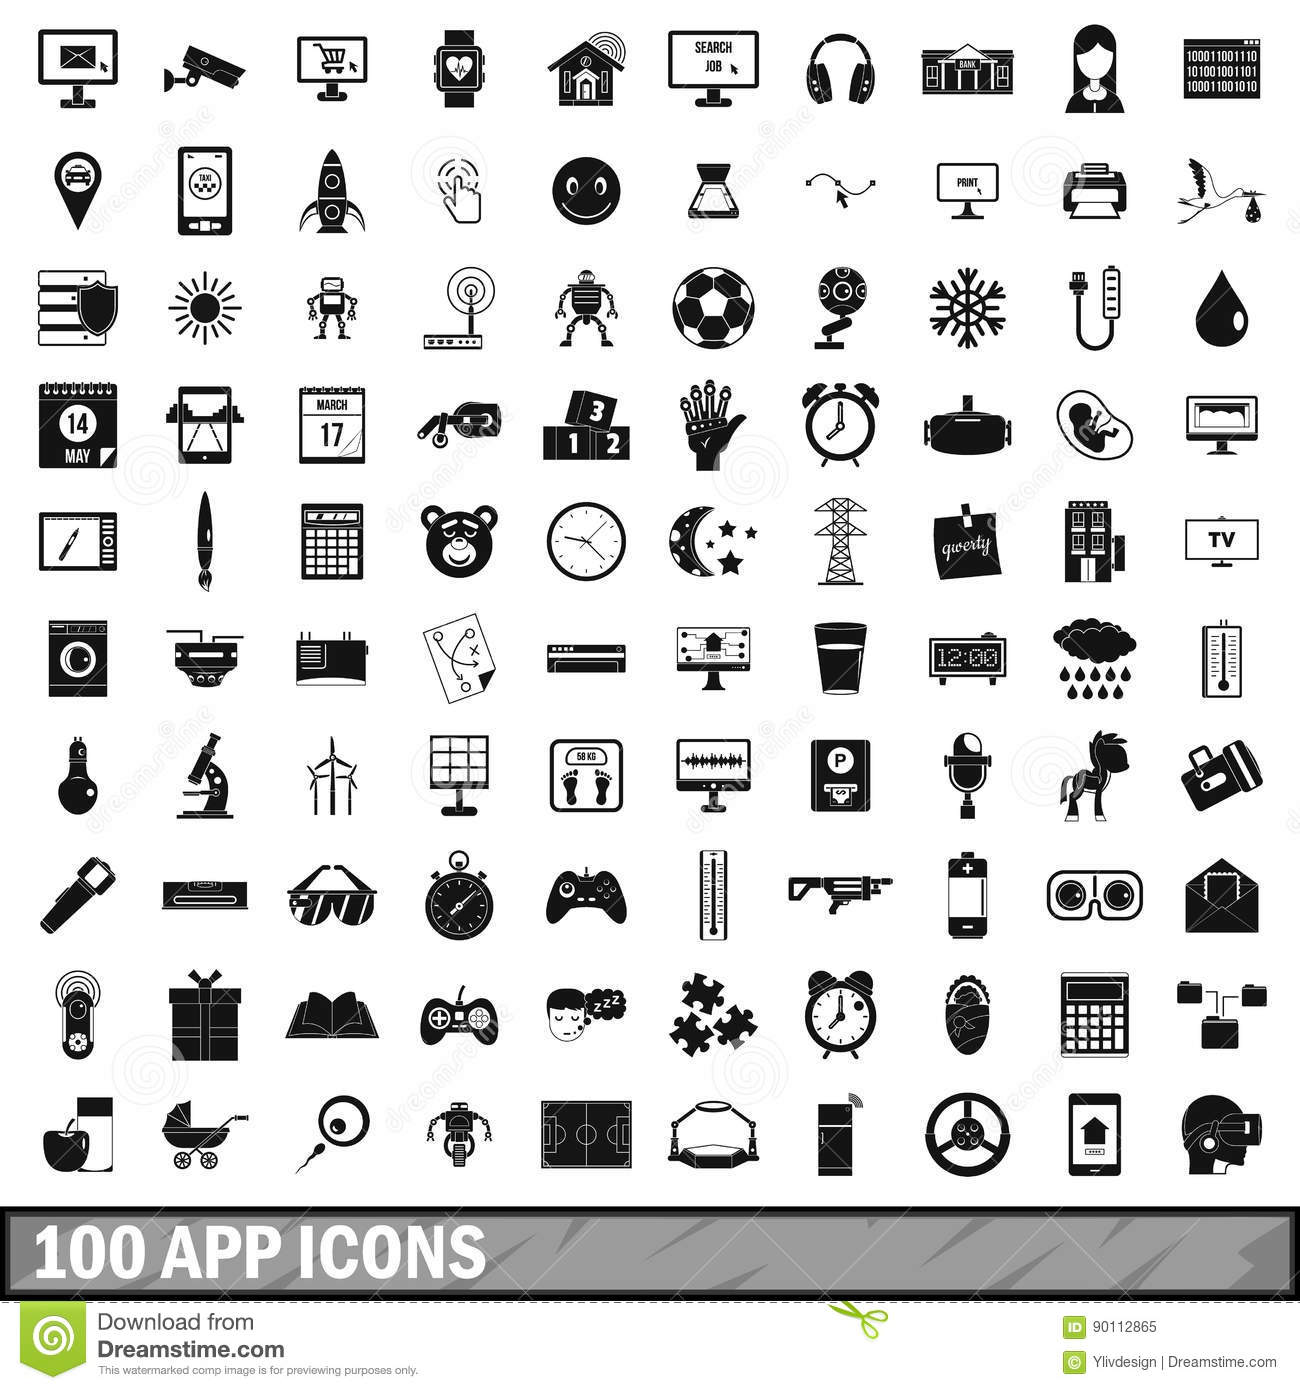 63fee201 100 app icons set in simple style for any design vector illustration